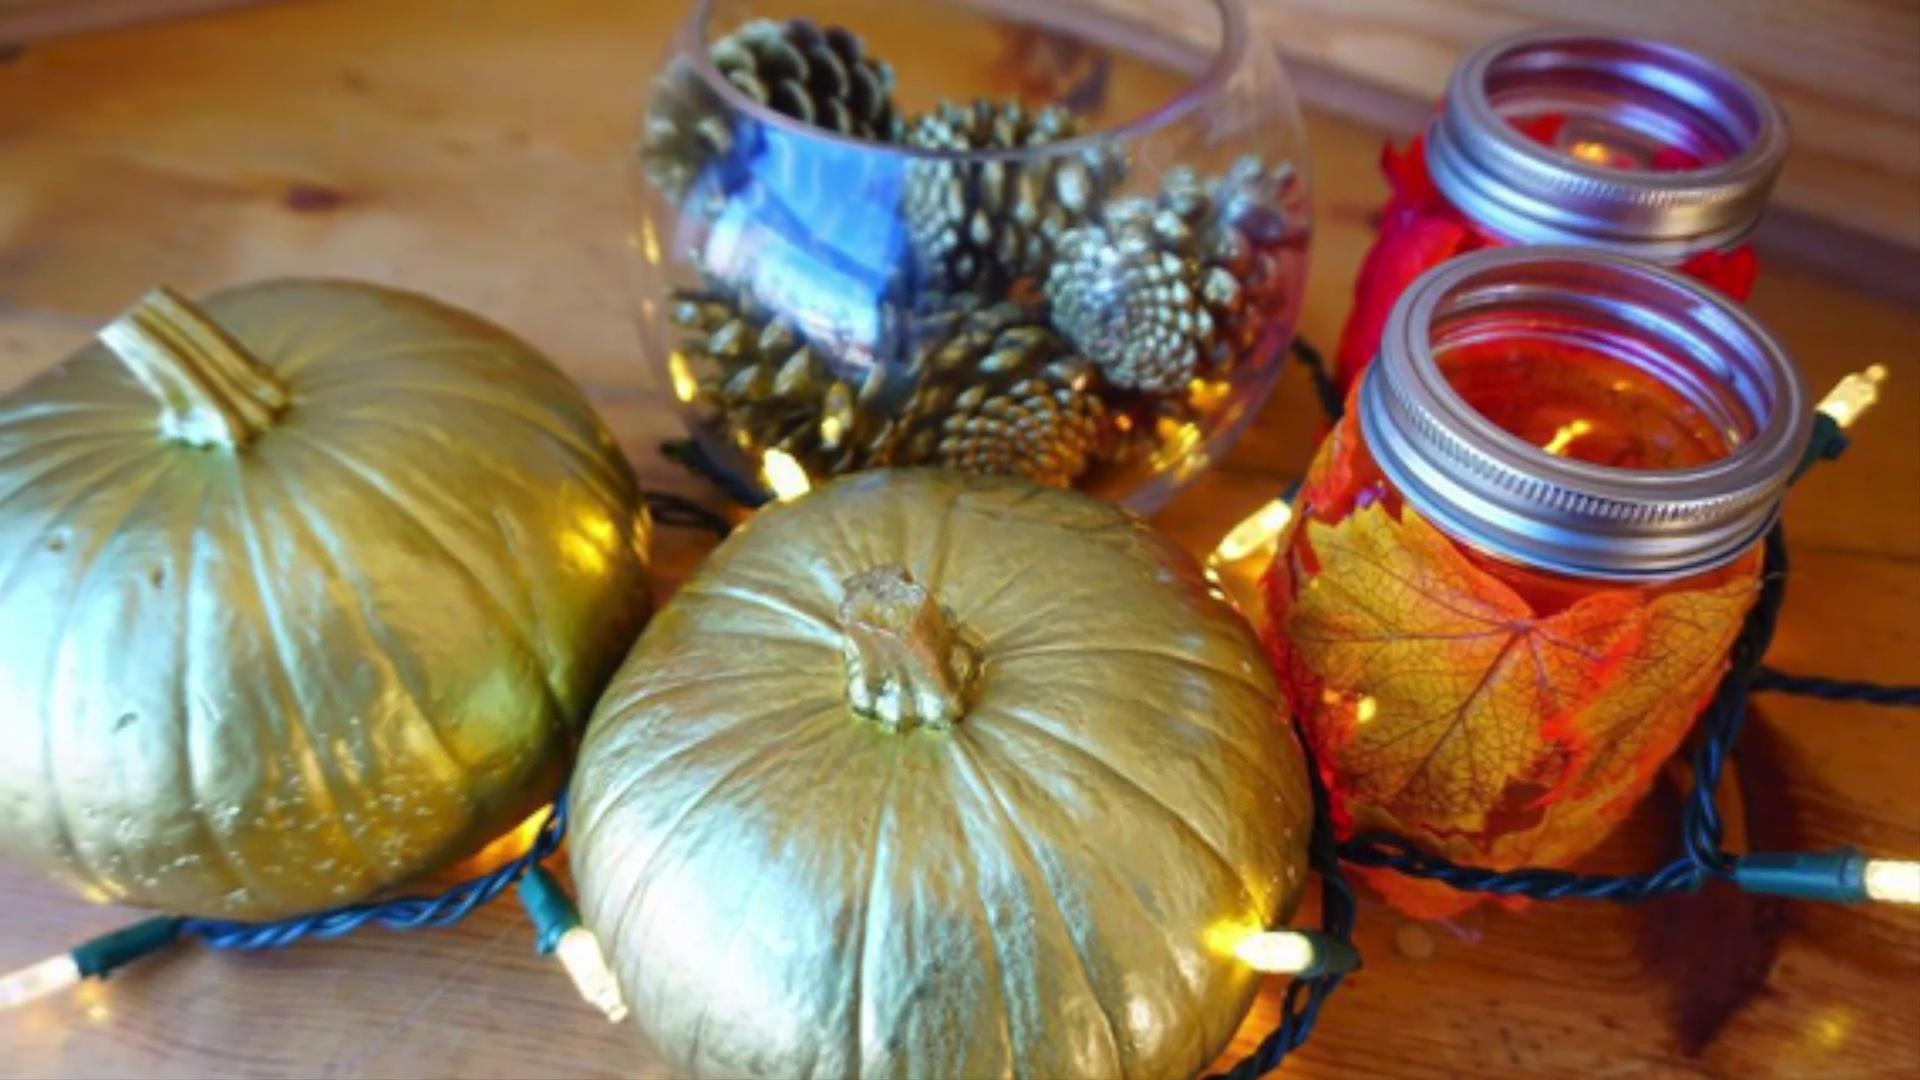 Get crafty with these DIY ideas for fall